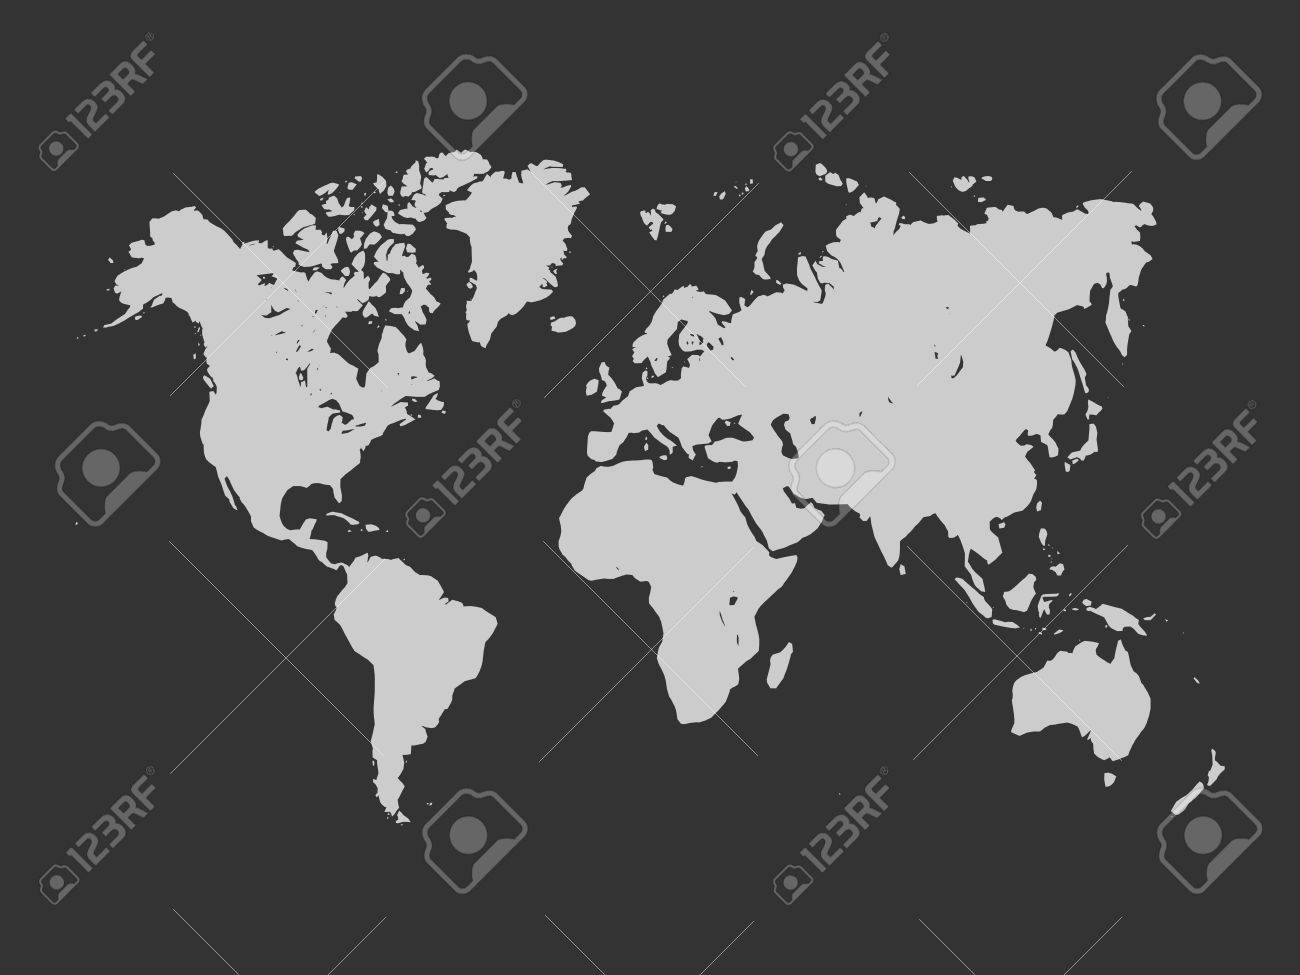 Map of world light grey silhouette on dark grey background map of world light grey silhouette on dark grey background simplified world map stock gumiabroncs Image collections